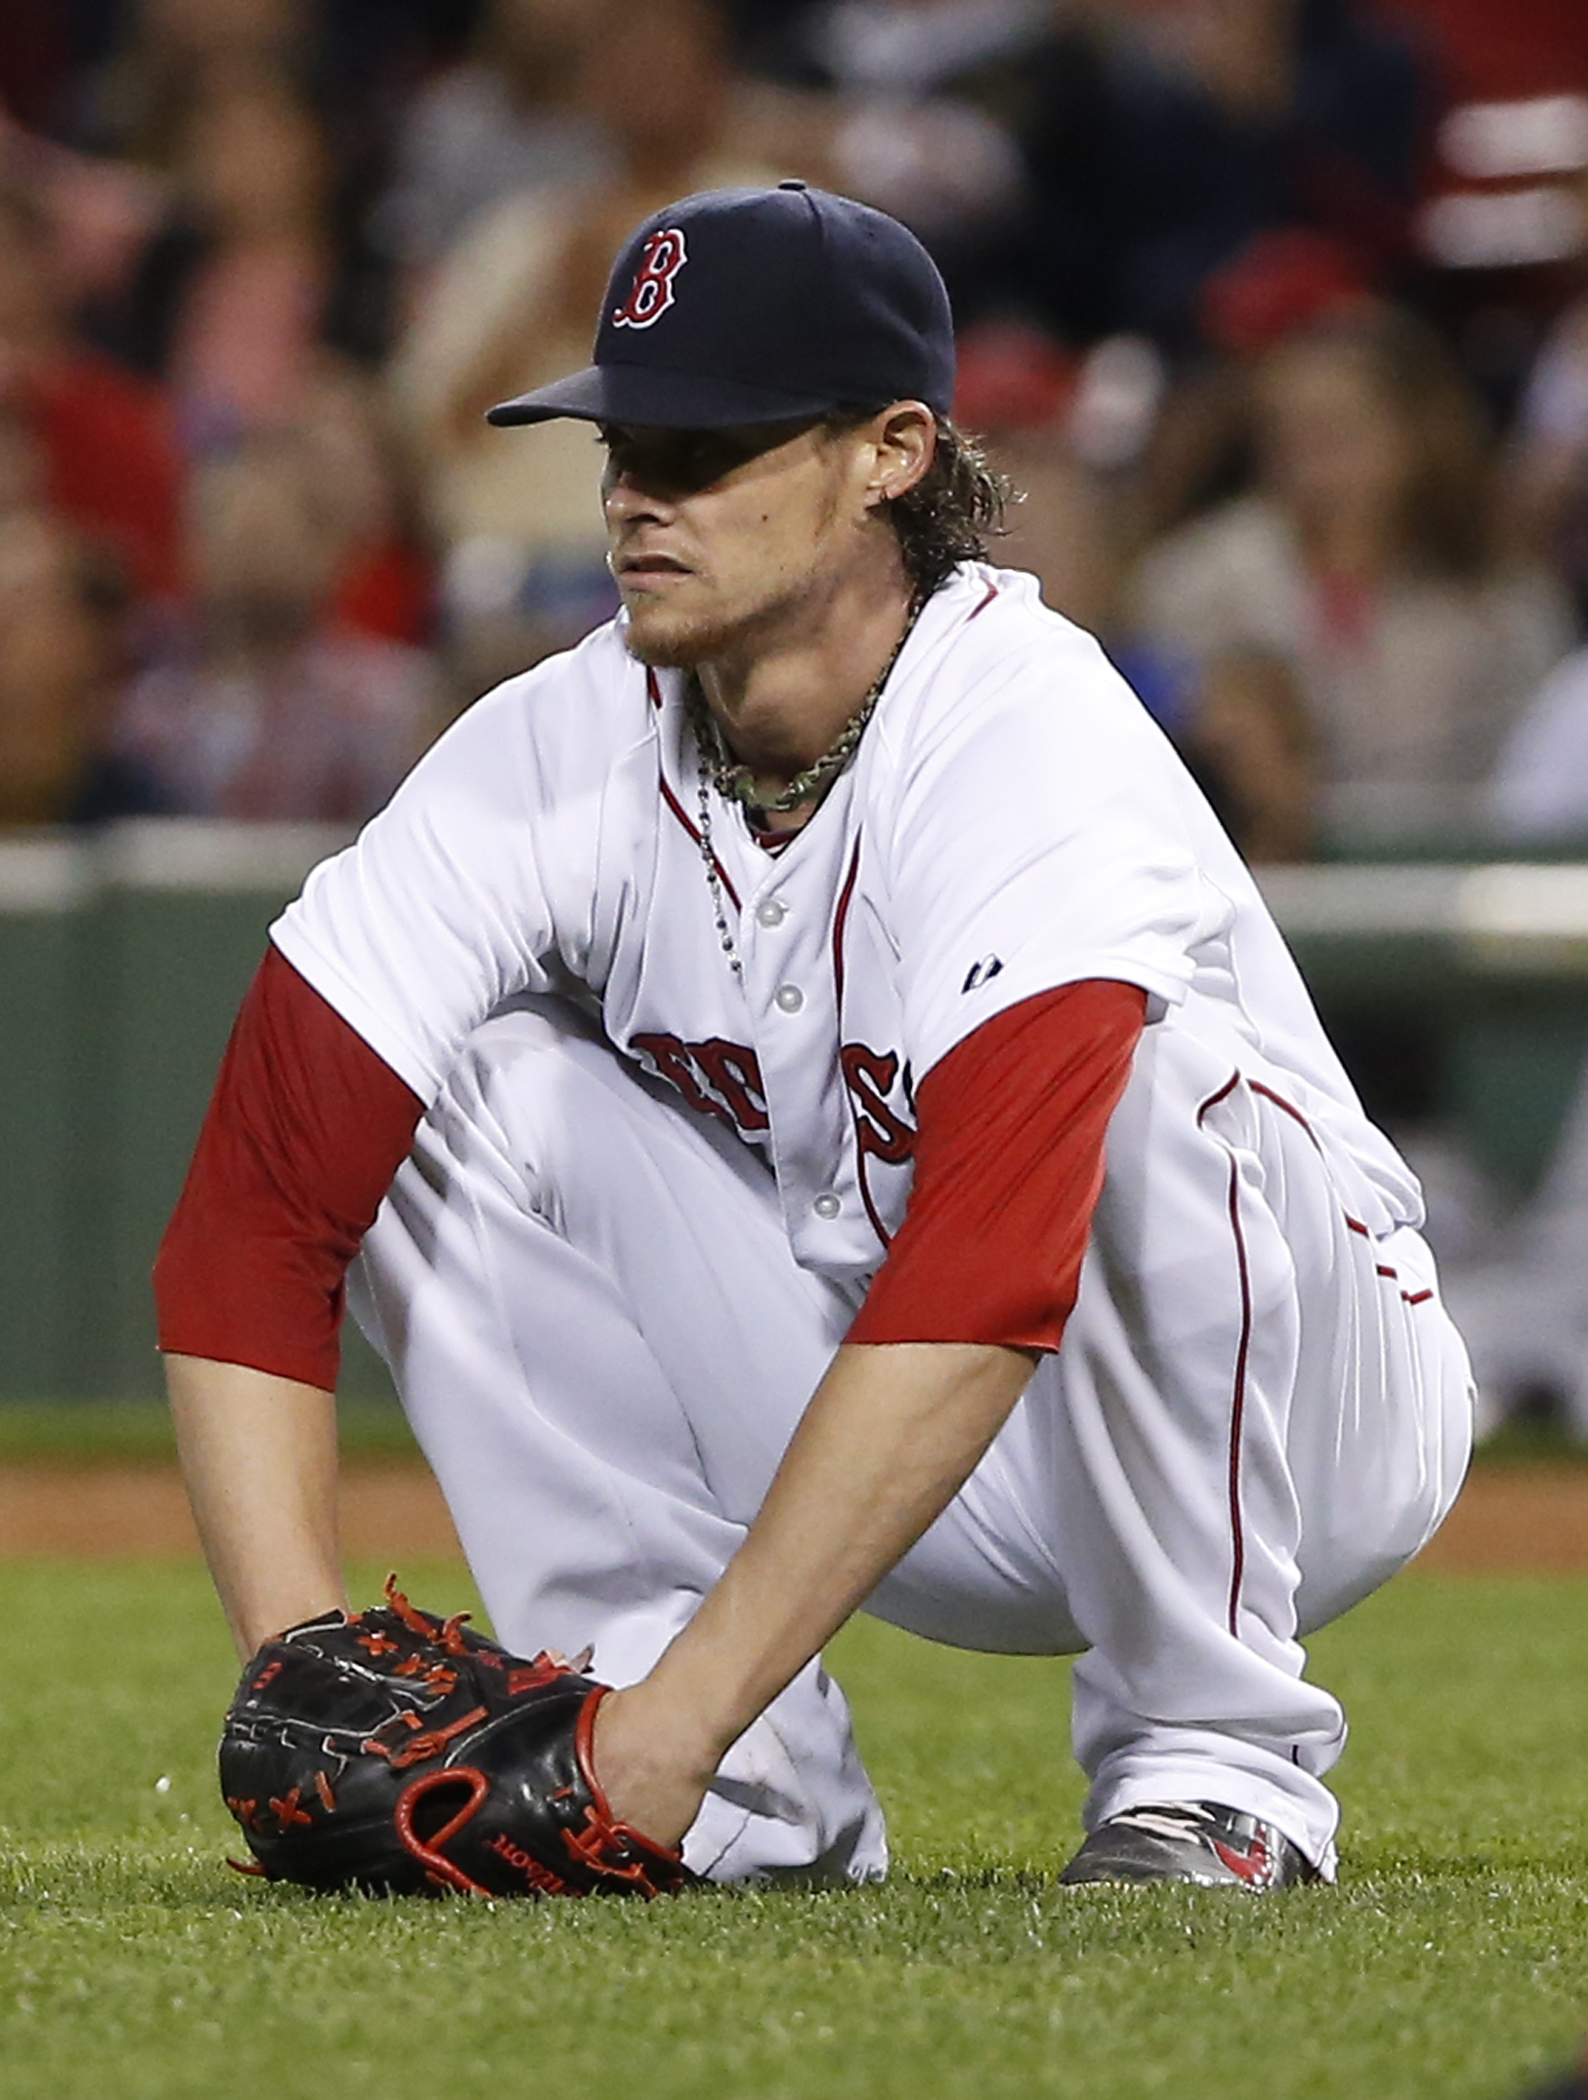 Quantifying the Inconsistency of Clay Buchholz